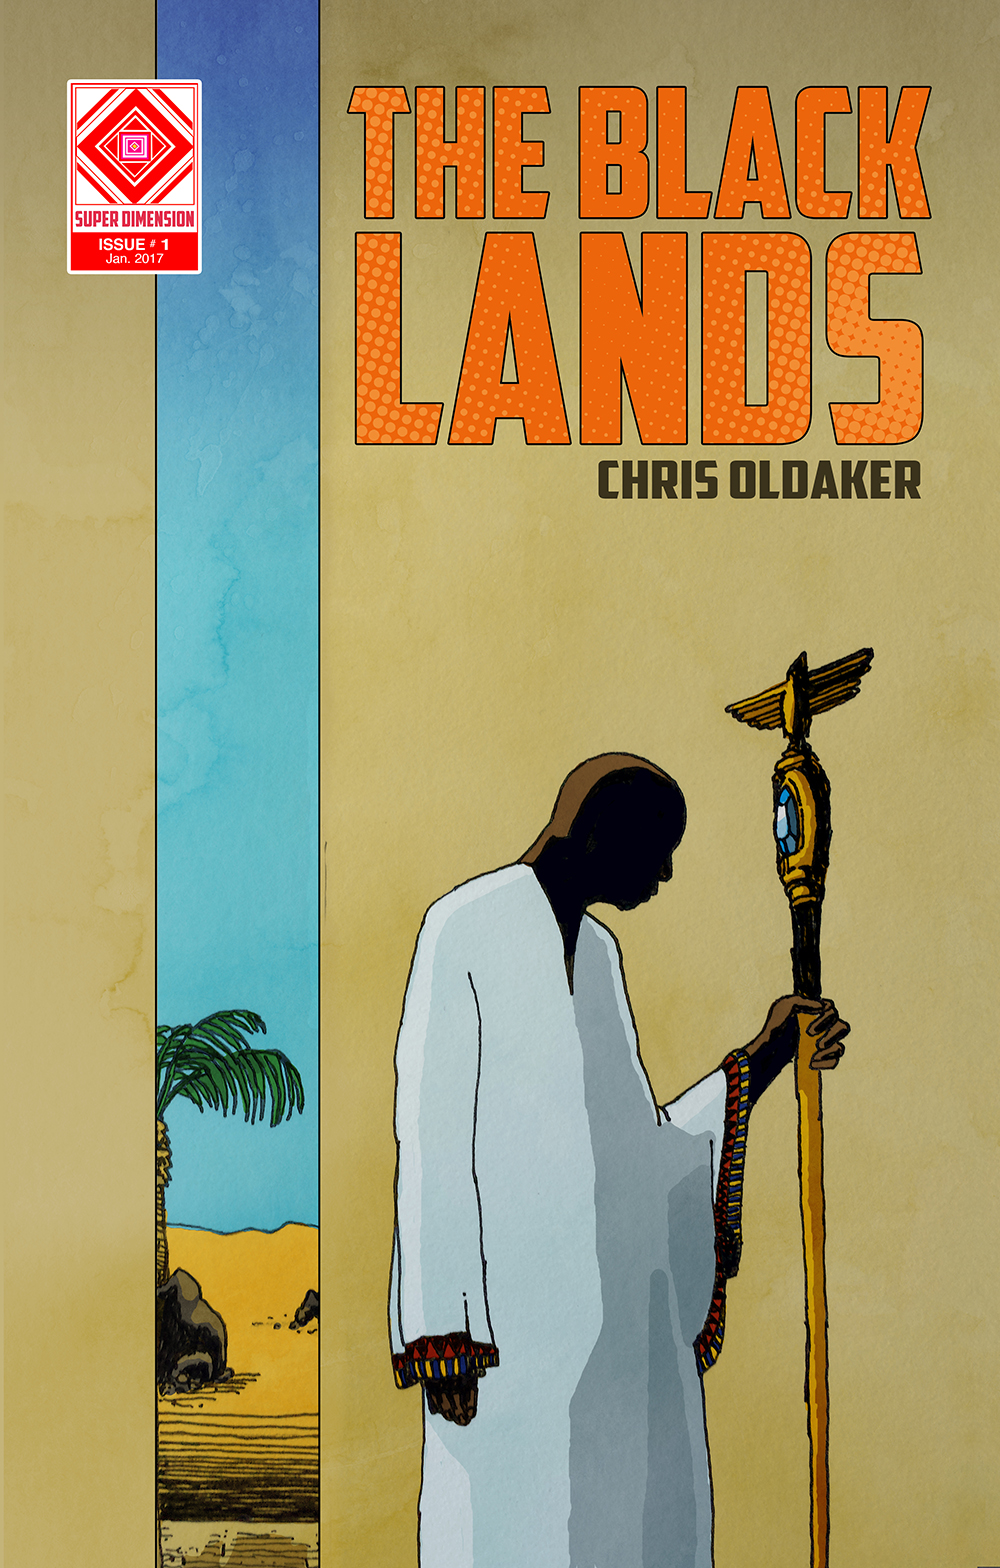 The Black Lands - A graphic novel, told in parts, telling an alternative history of Egypt's most ancient myths.The story of Khemose, the ancient kingdom of Khemet's young leader, as he struggles to maintain the precarious balance of the fledgling civilization his father built from nothing.Subscribe to The Black Lands ➝Support The Black Lands ➝